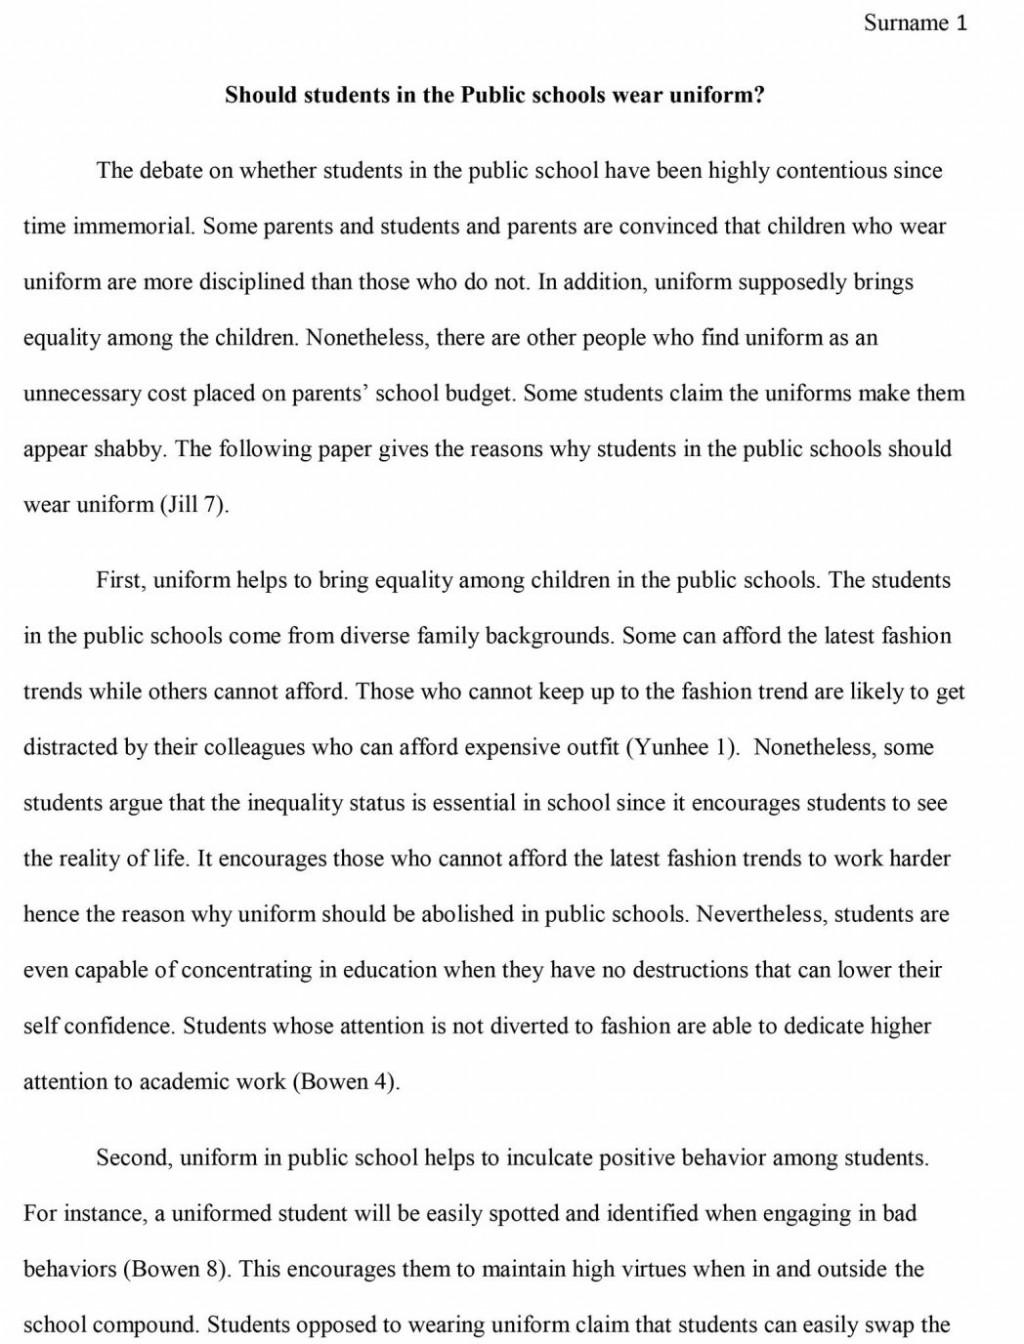 006 Argumentative Essay On School Uniforms Sample Essaysmasters Public Educat Topics Curriculum System Canteen Education Funding Army 1048x1376 Dreaded About Are Beneficial Should Be Banned Persuasive Mandatory Large